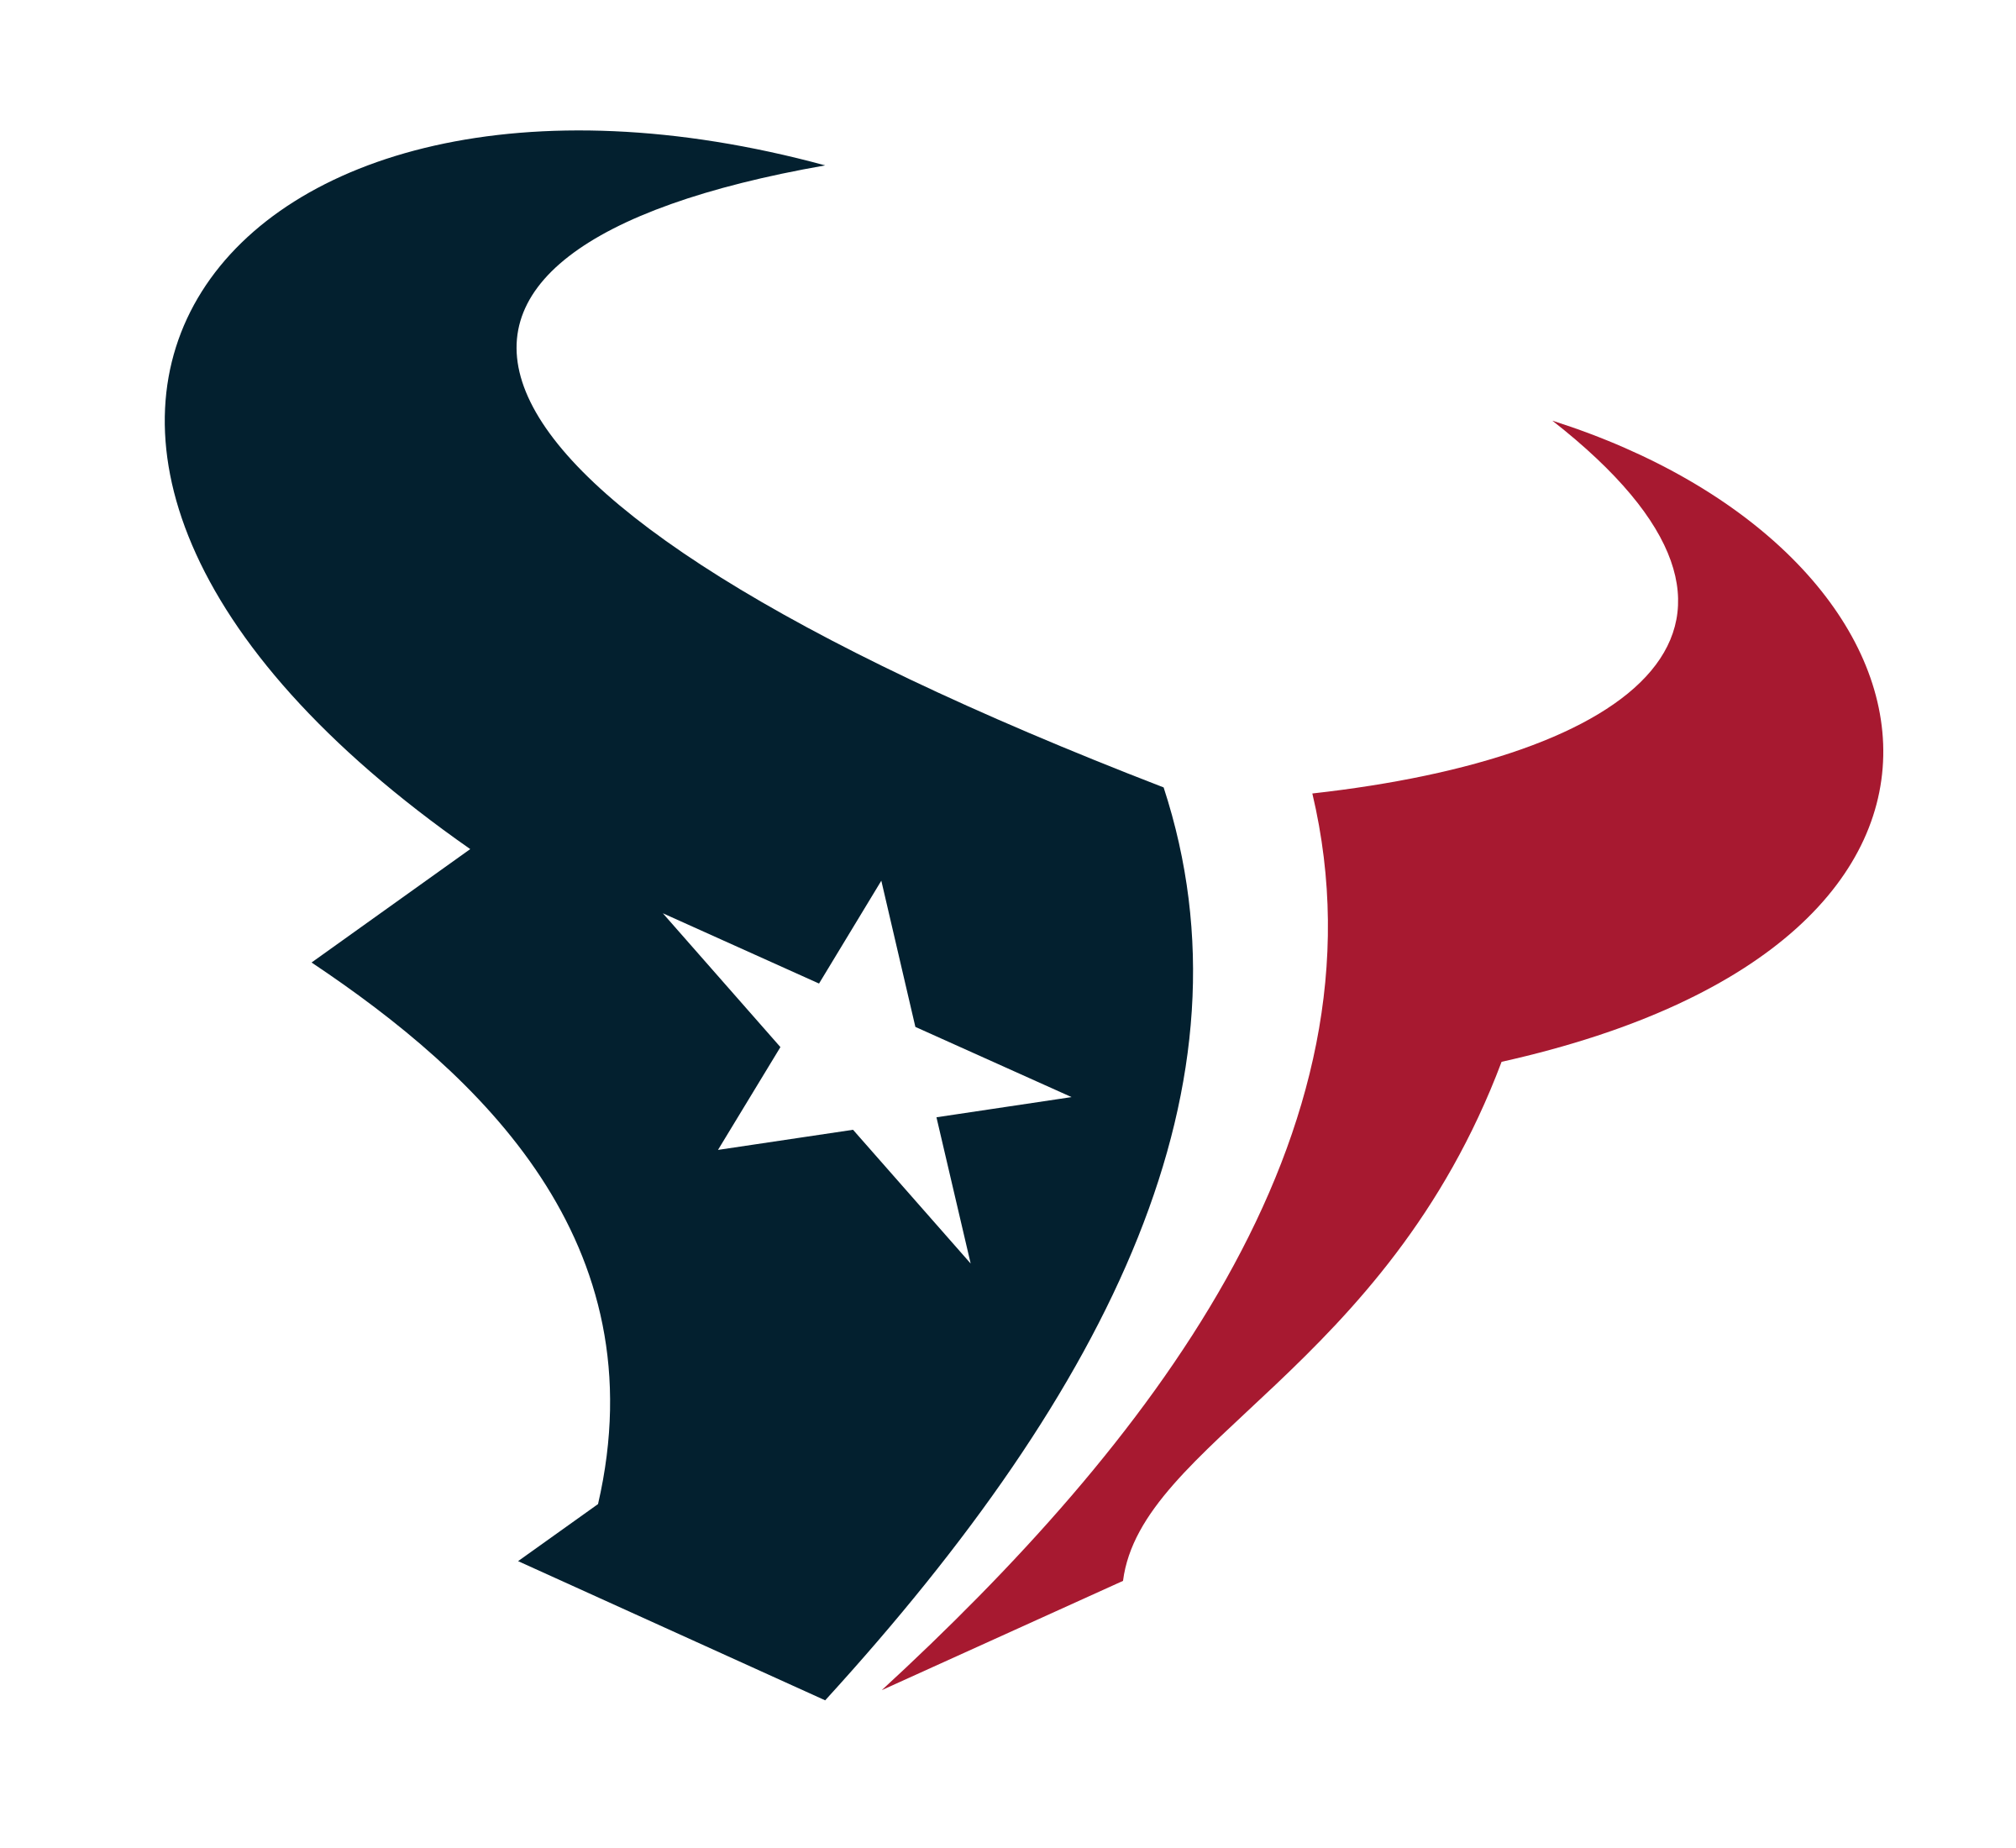 Vector houston. Texans logo png transparent